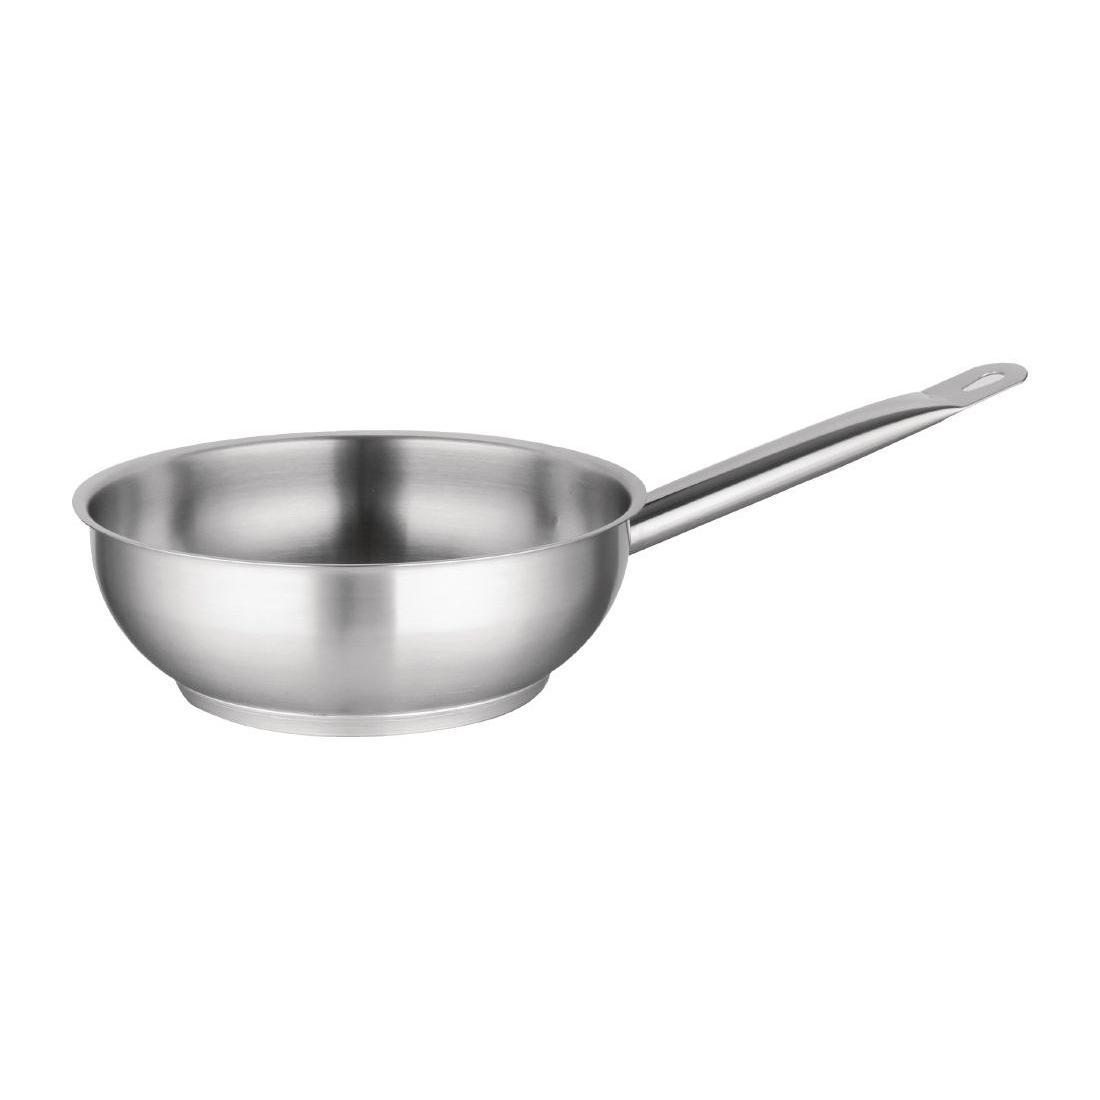 Vogue Stainless Steel Saute Pan 200mm - M947